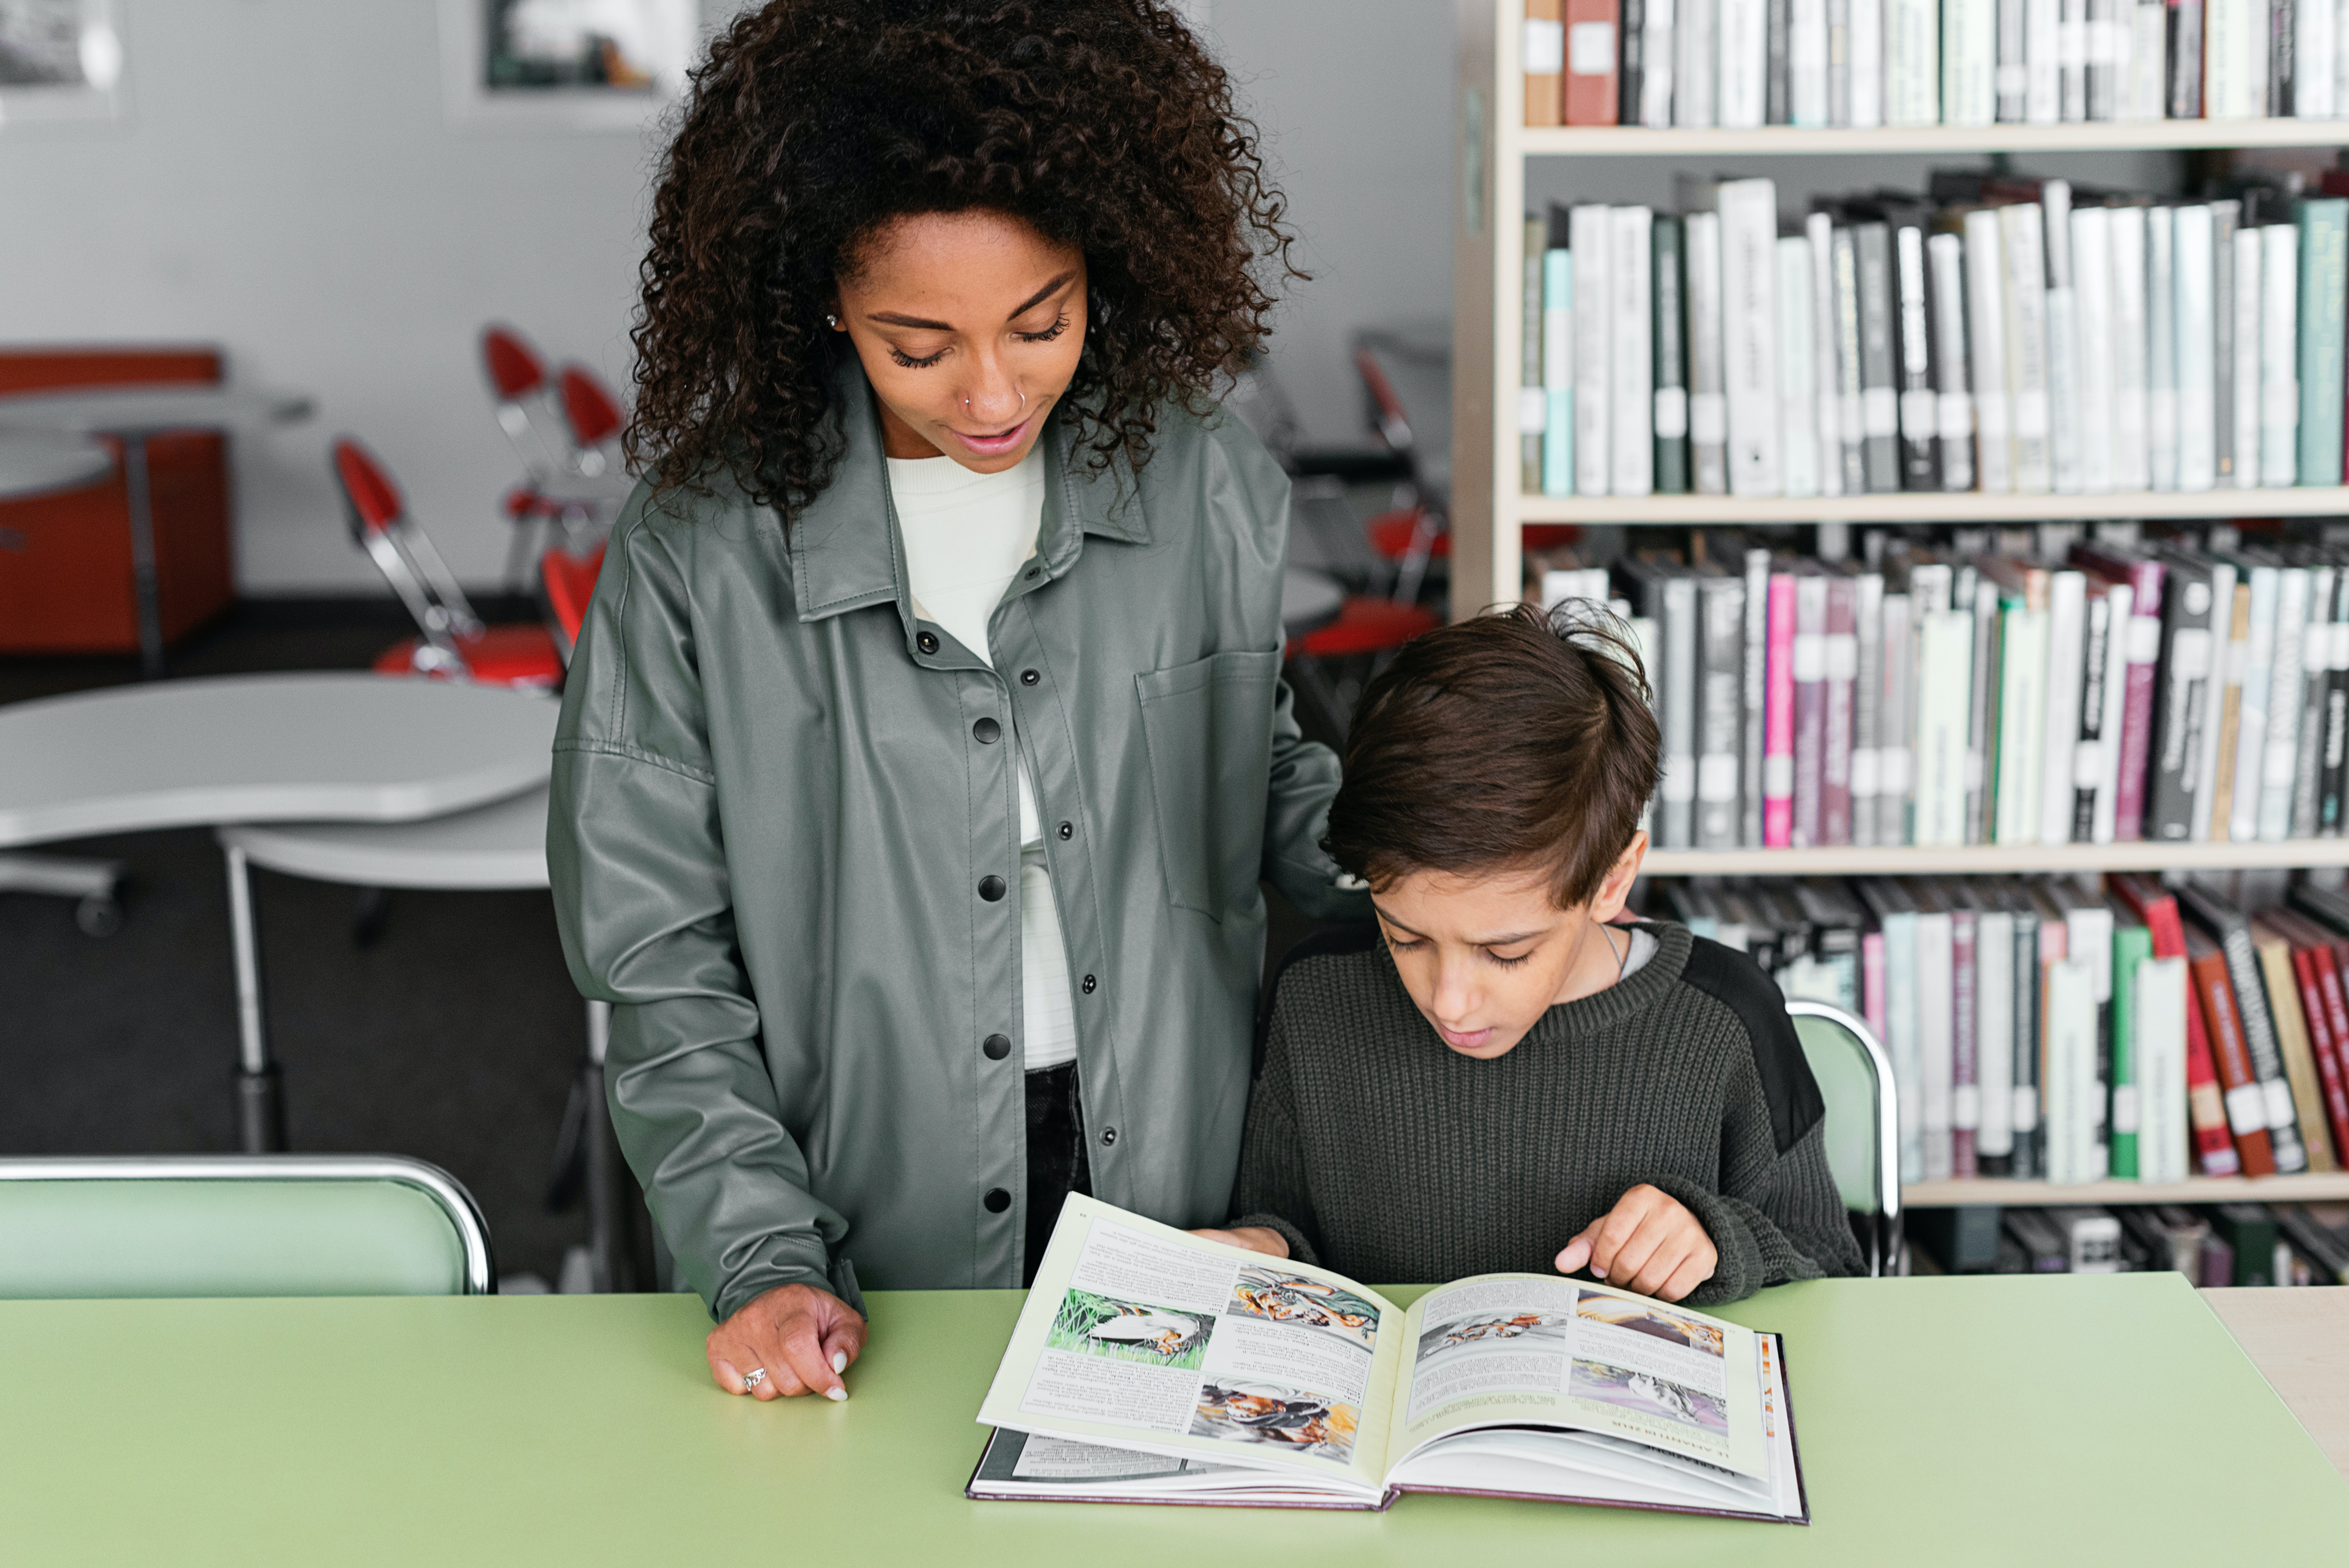 Two kids are at a light green table in a library. One kid is standing and appears to be an older black female in a green jacket and white shirt. The second kid is sitting and appears to be a younger male learning to read.